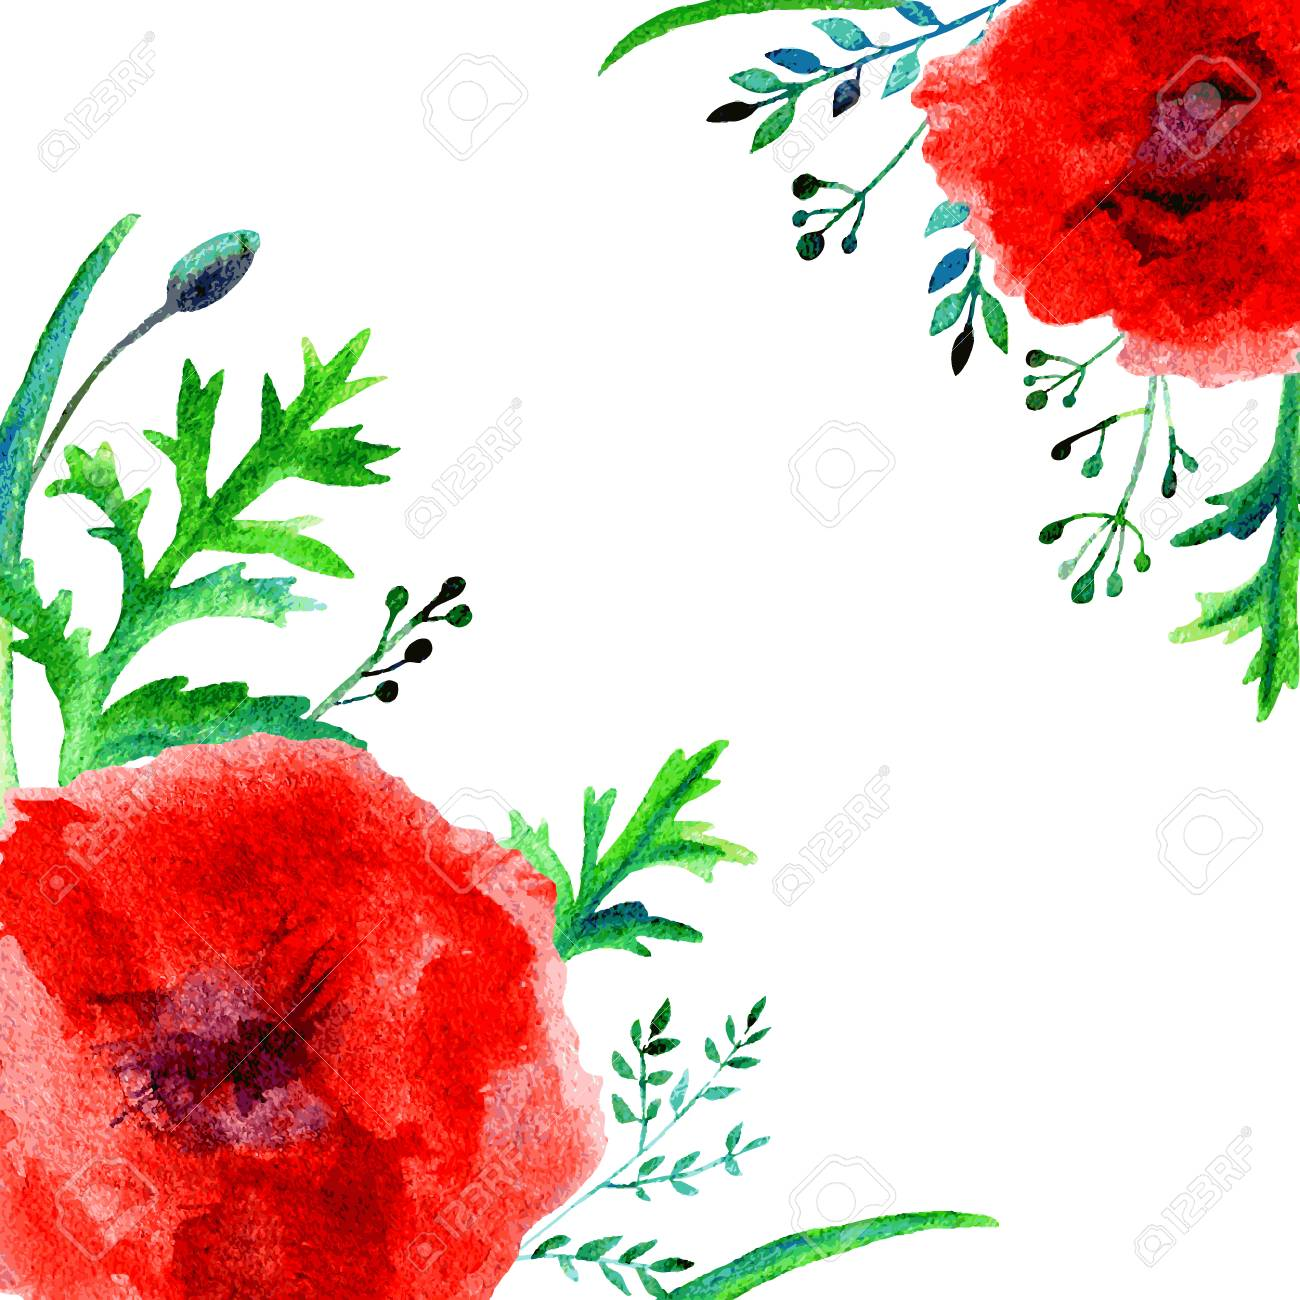 Watercolor Poppy Flower Isolated On A White Background. Can Be ...